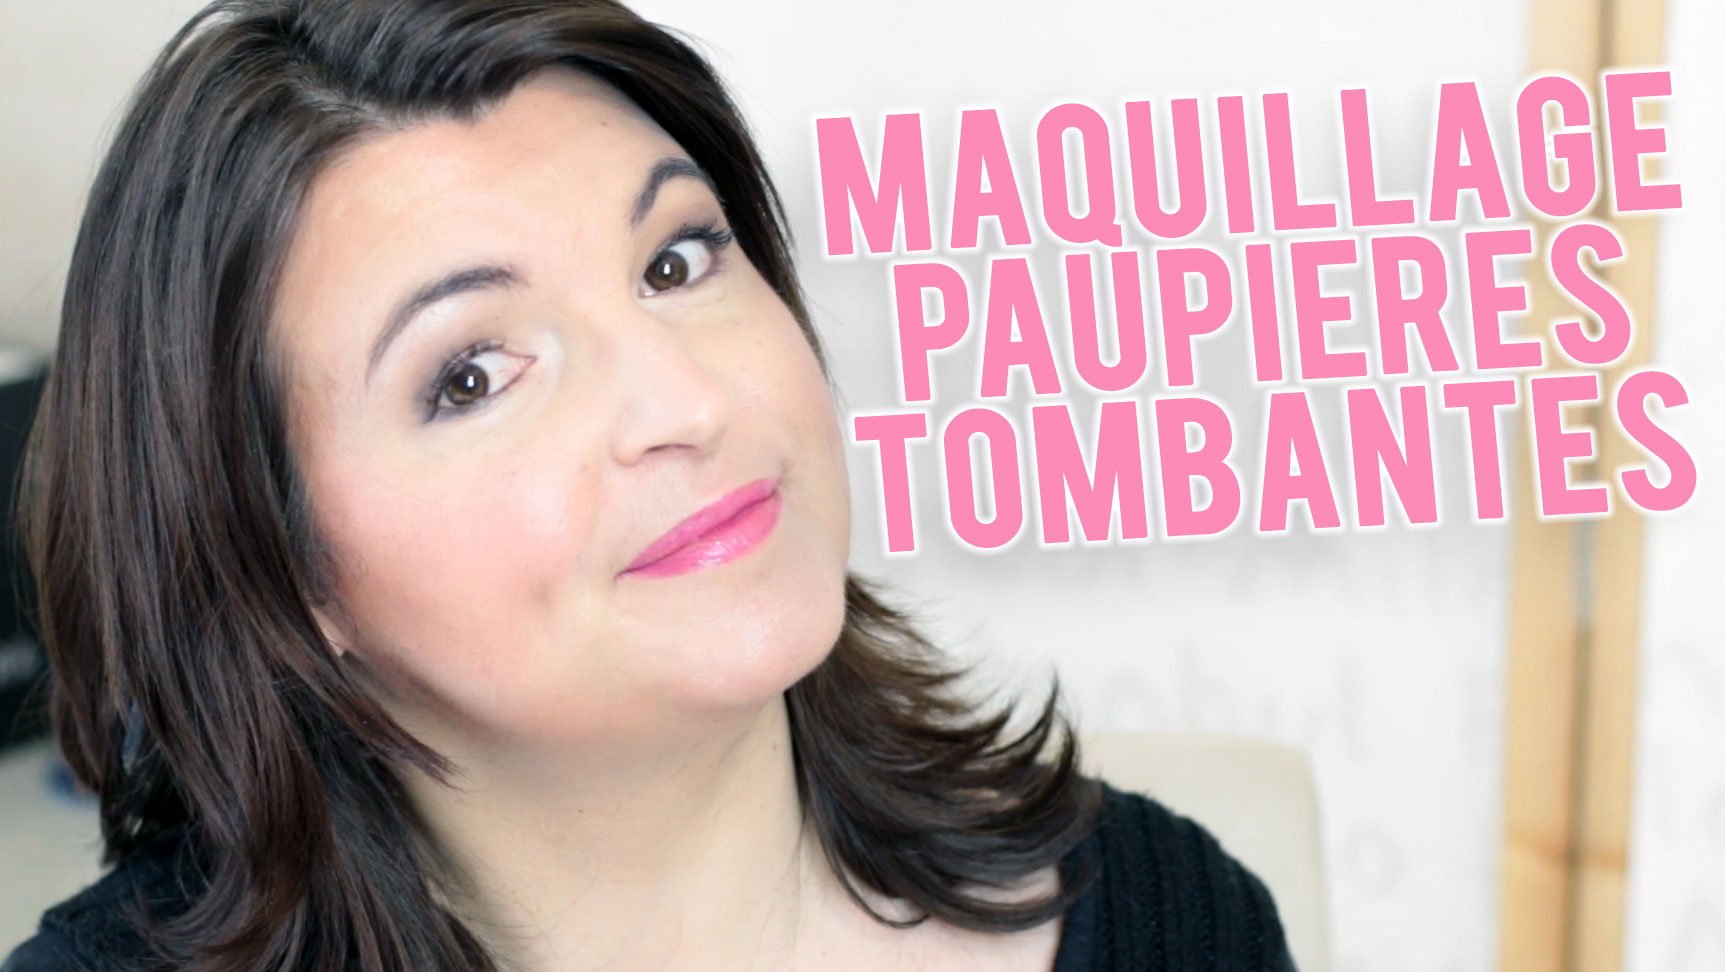 miniature-maquillage-paupieres-tombantes